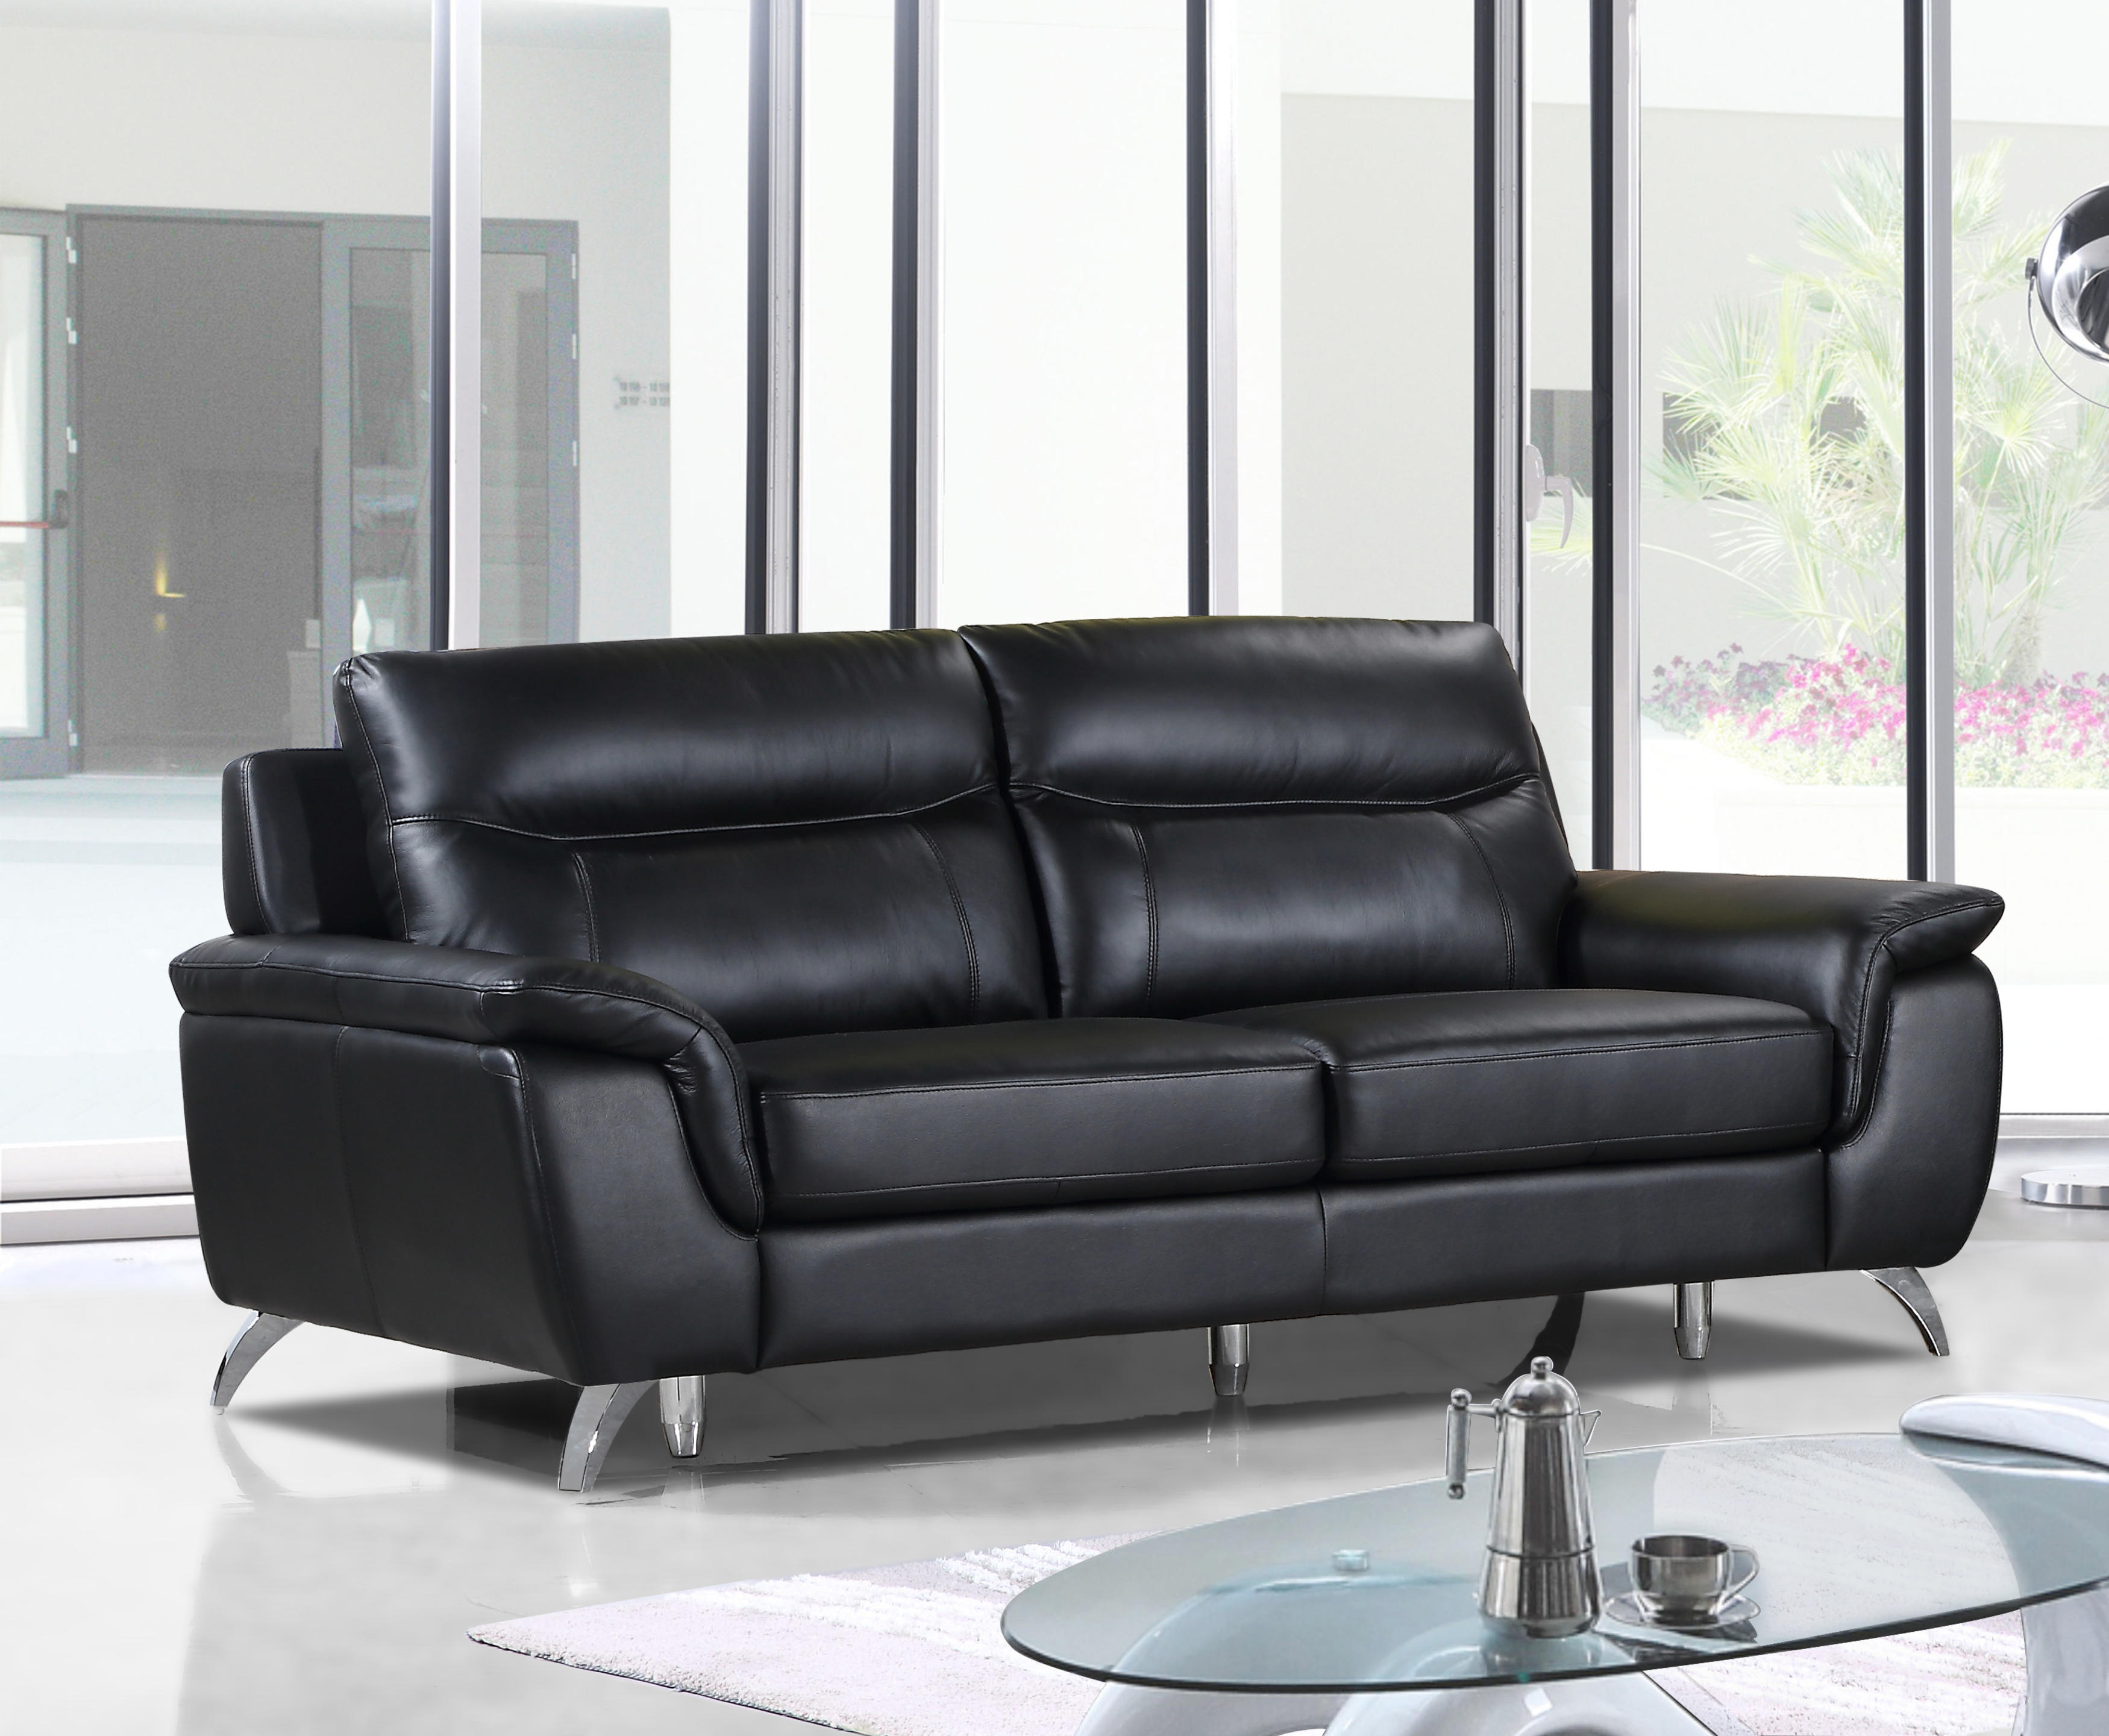 Cortesi Home Chicago Genuine Leather Sofa Black 79